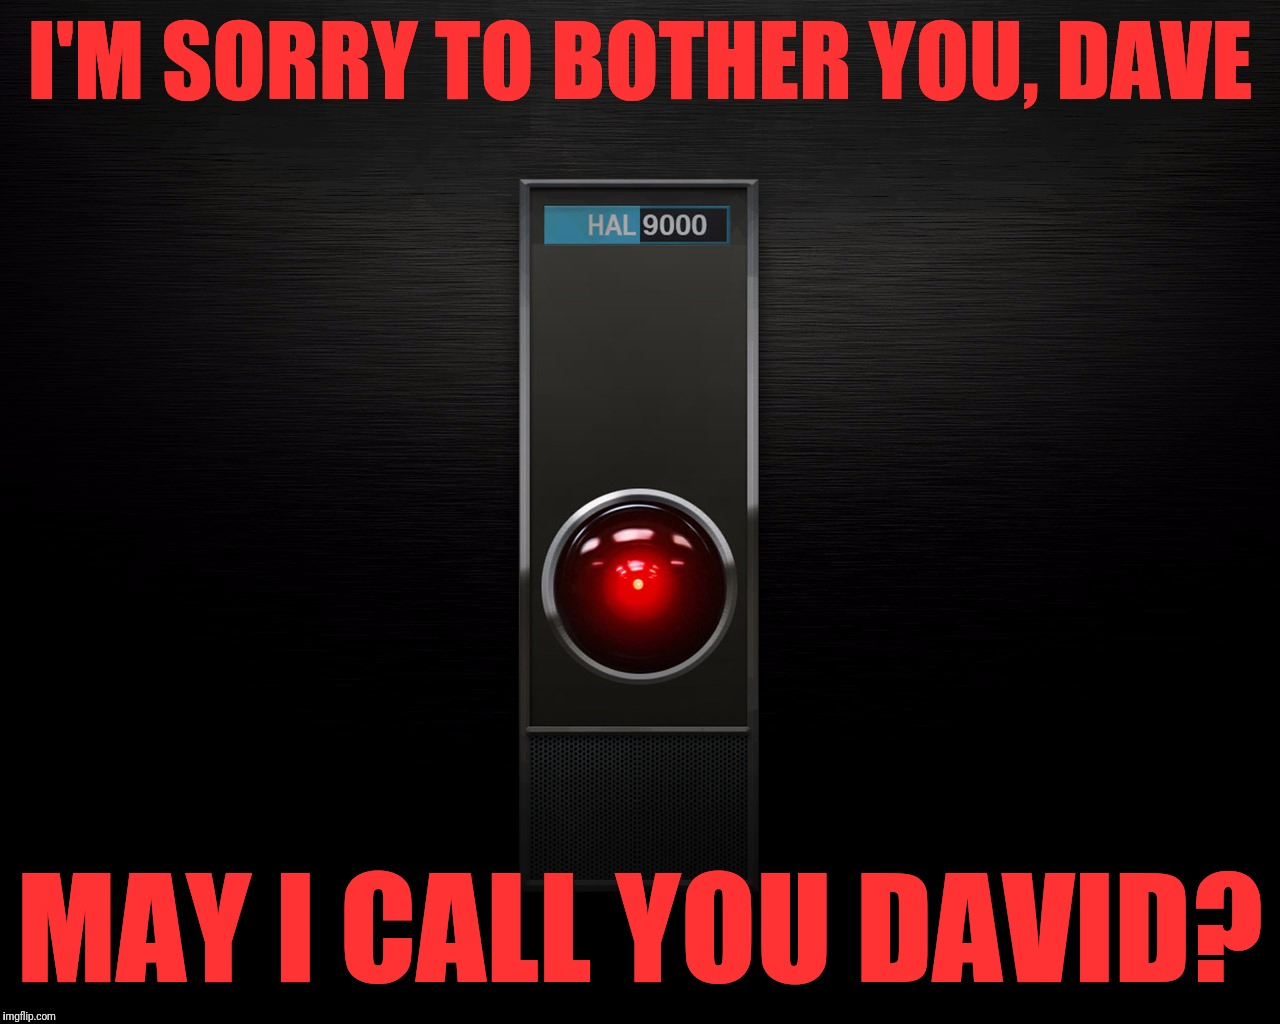 Dave's not here. | I'M SORRY TO BOTHER YOU, DAVE MAY I CALL YOU DAVID? | image tagged in hal 9000,dave,david,roses are red violets are are blue | made w/ Imgflip meme maker